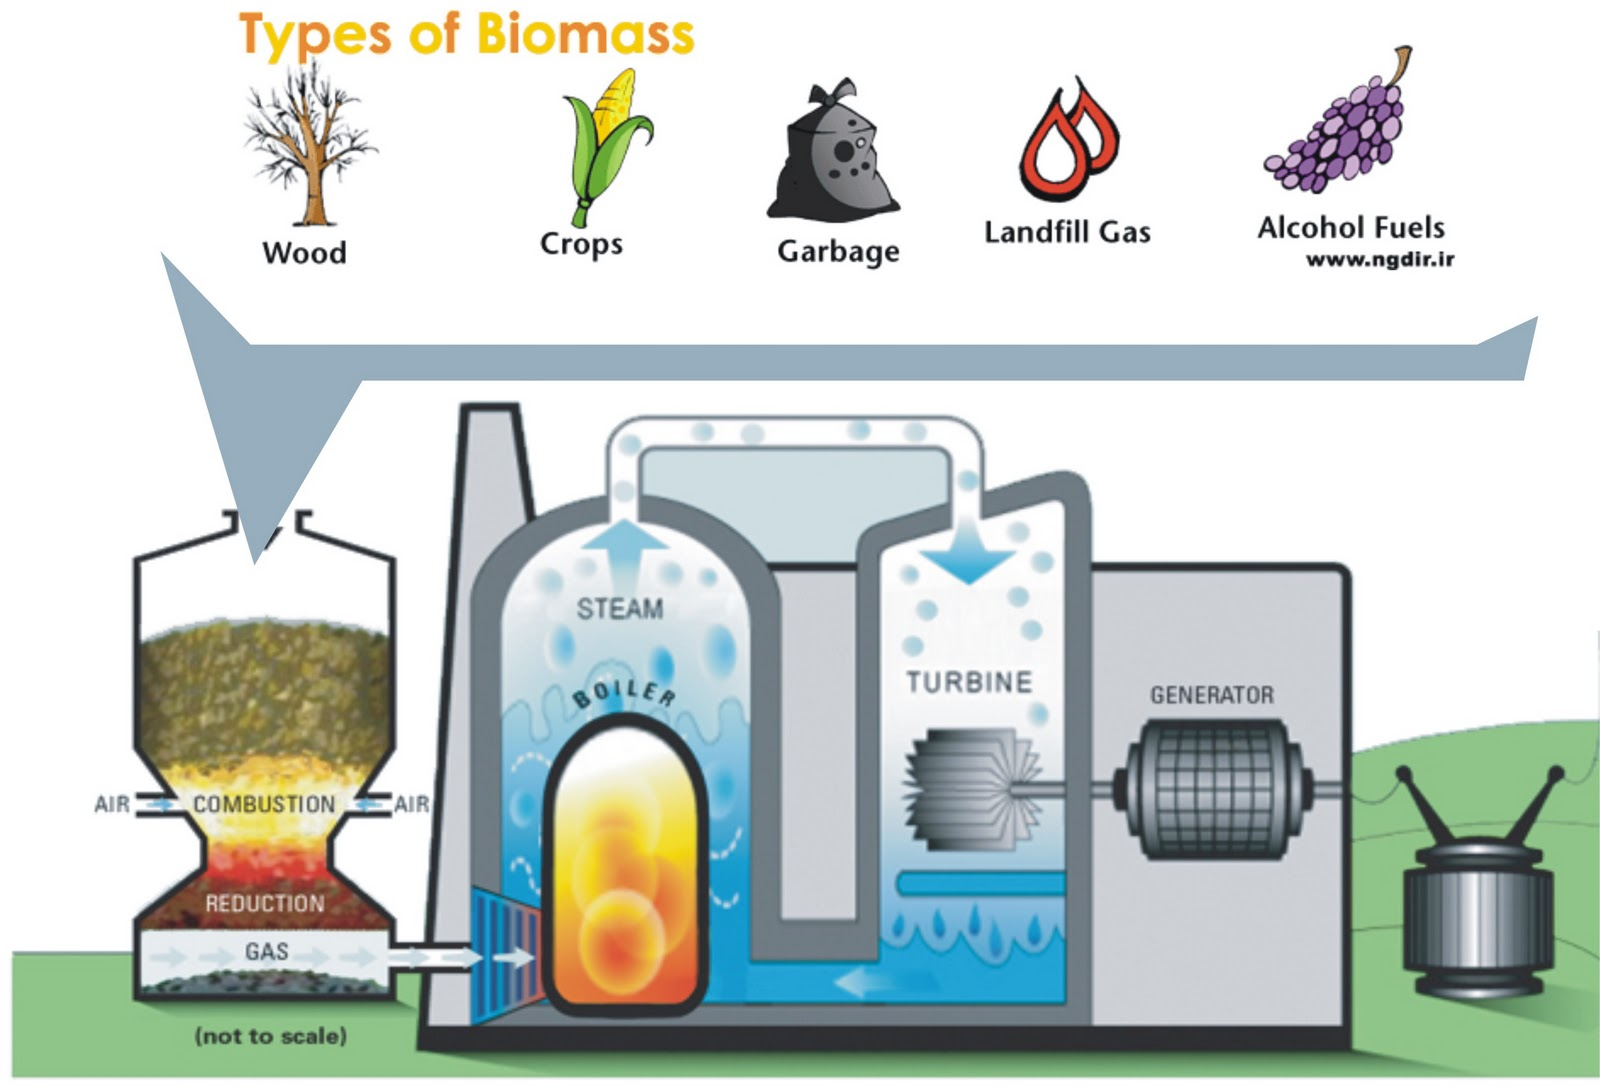 Biomass Energy Diagram For Kids Biomass diagraBiomass Energy Diagram